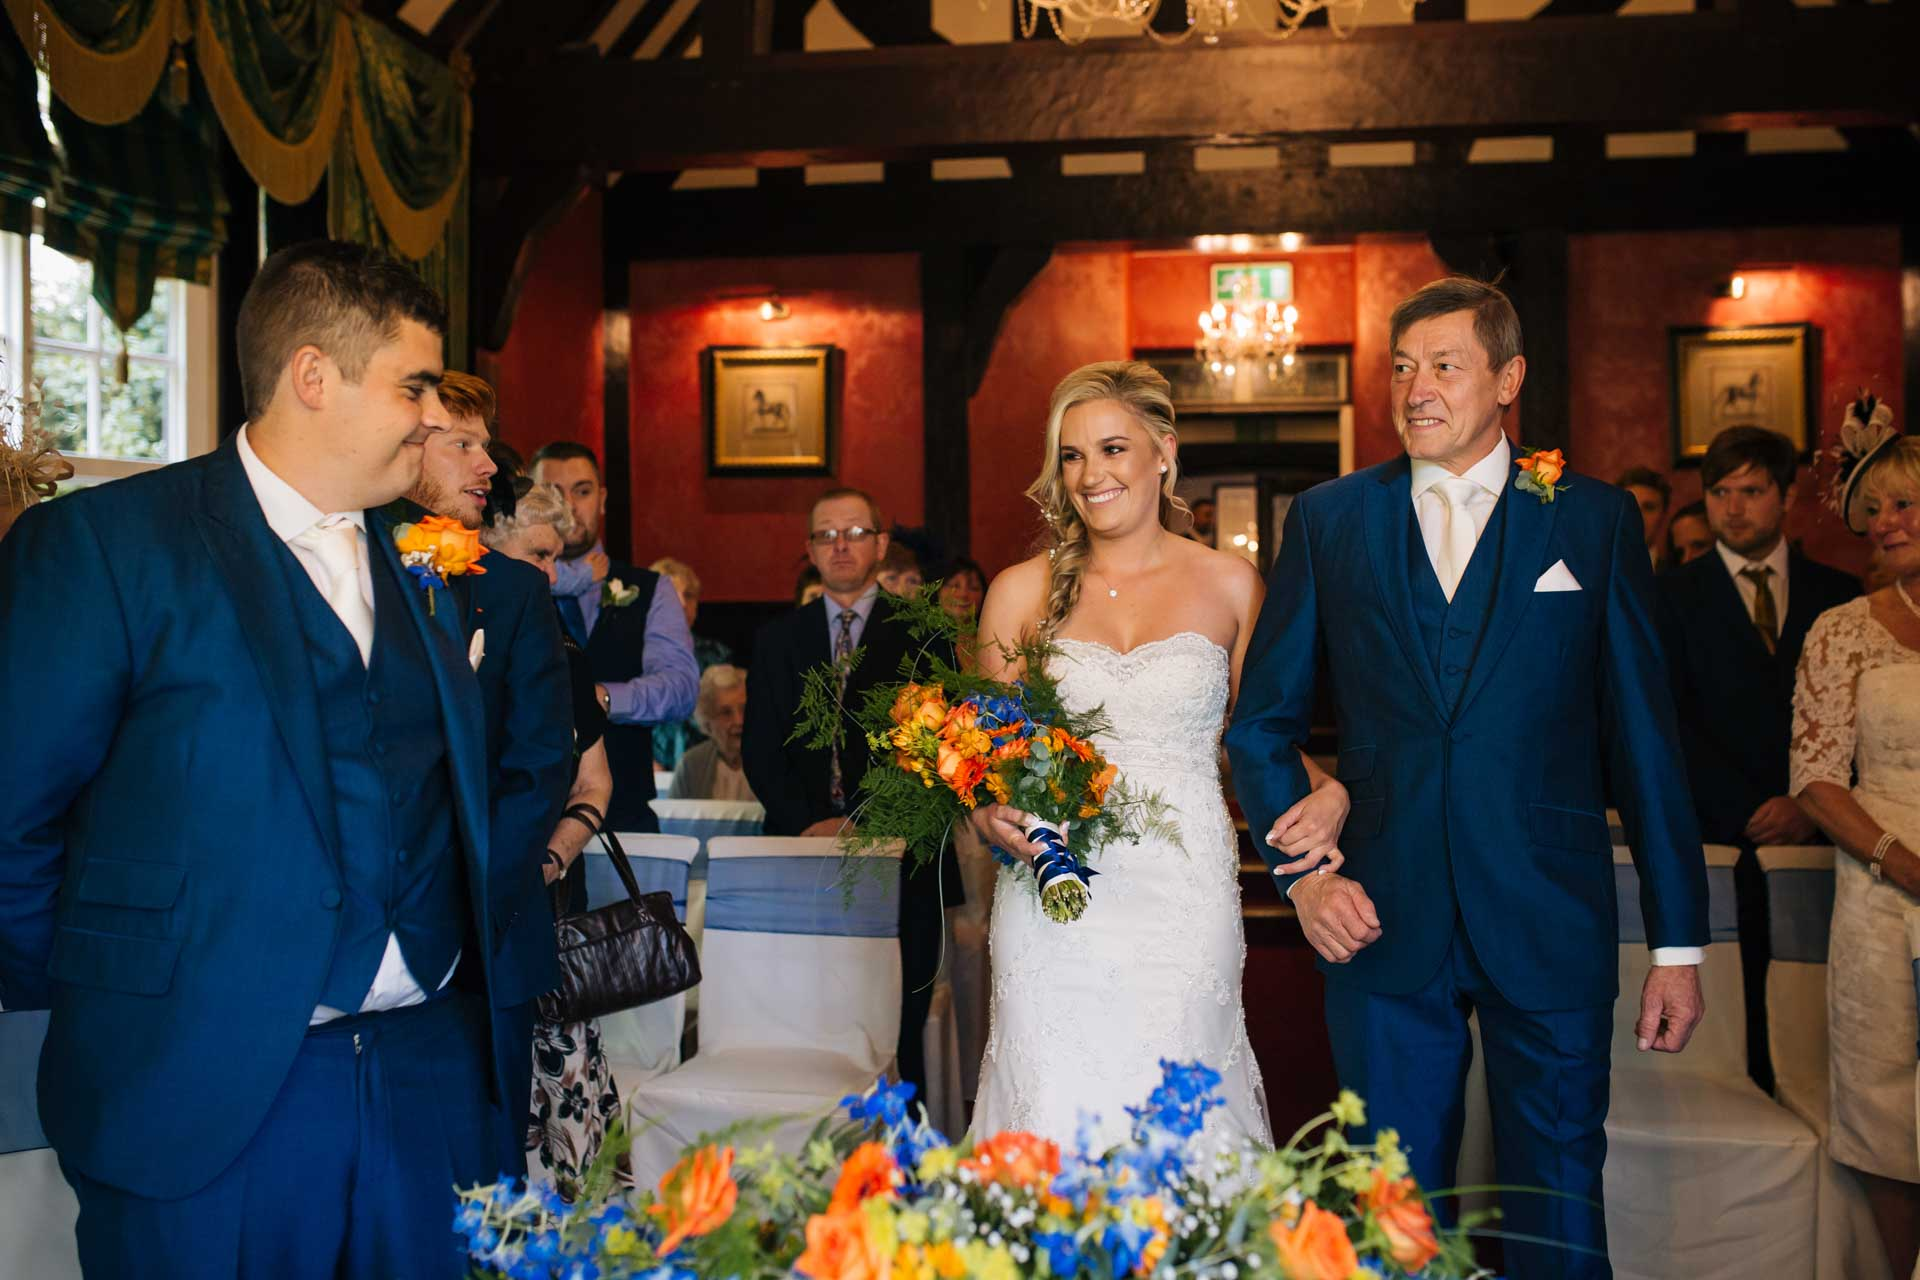 Stacey & Andrew's Wedding Mere Court Hotel, Cheshire